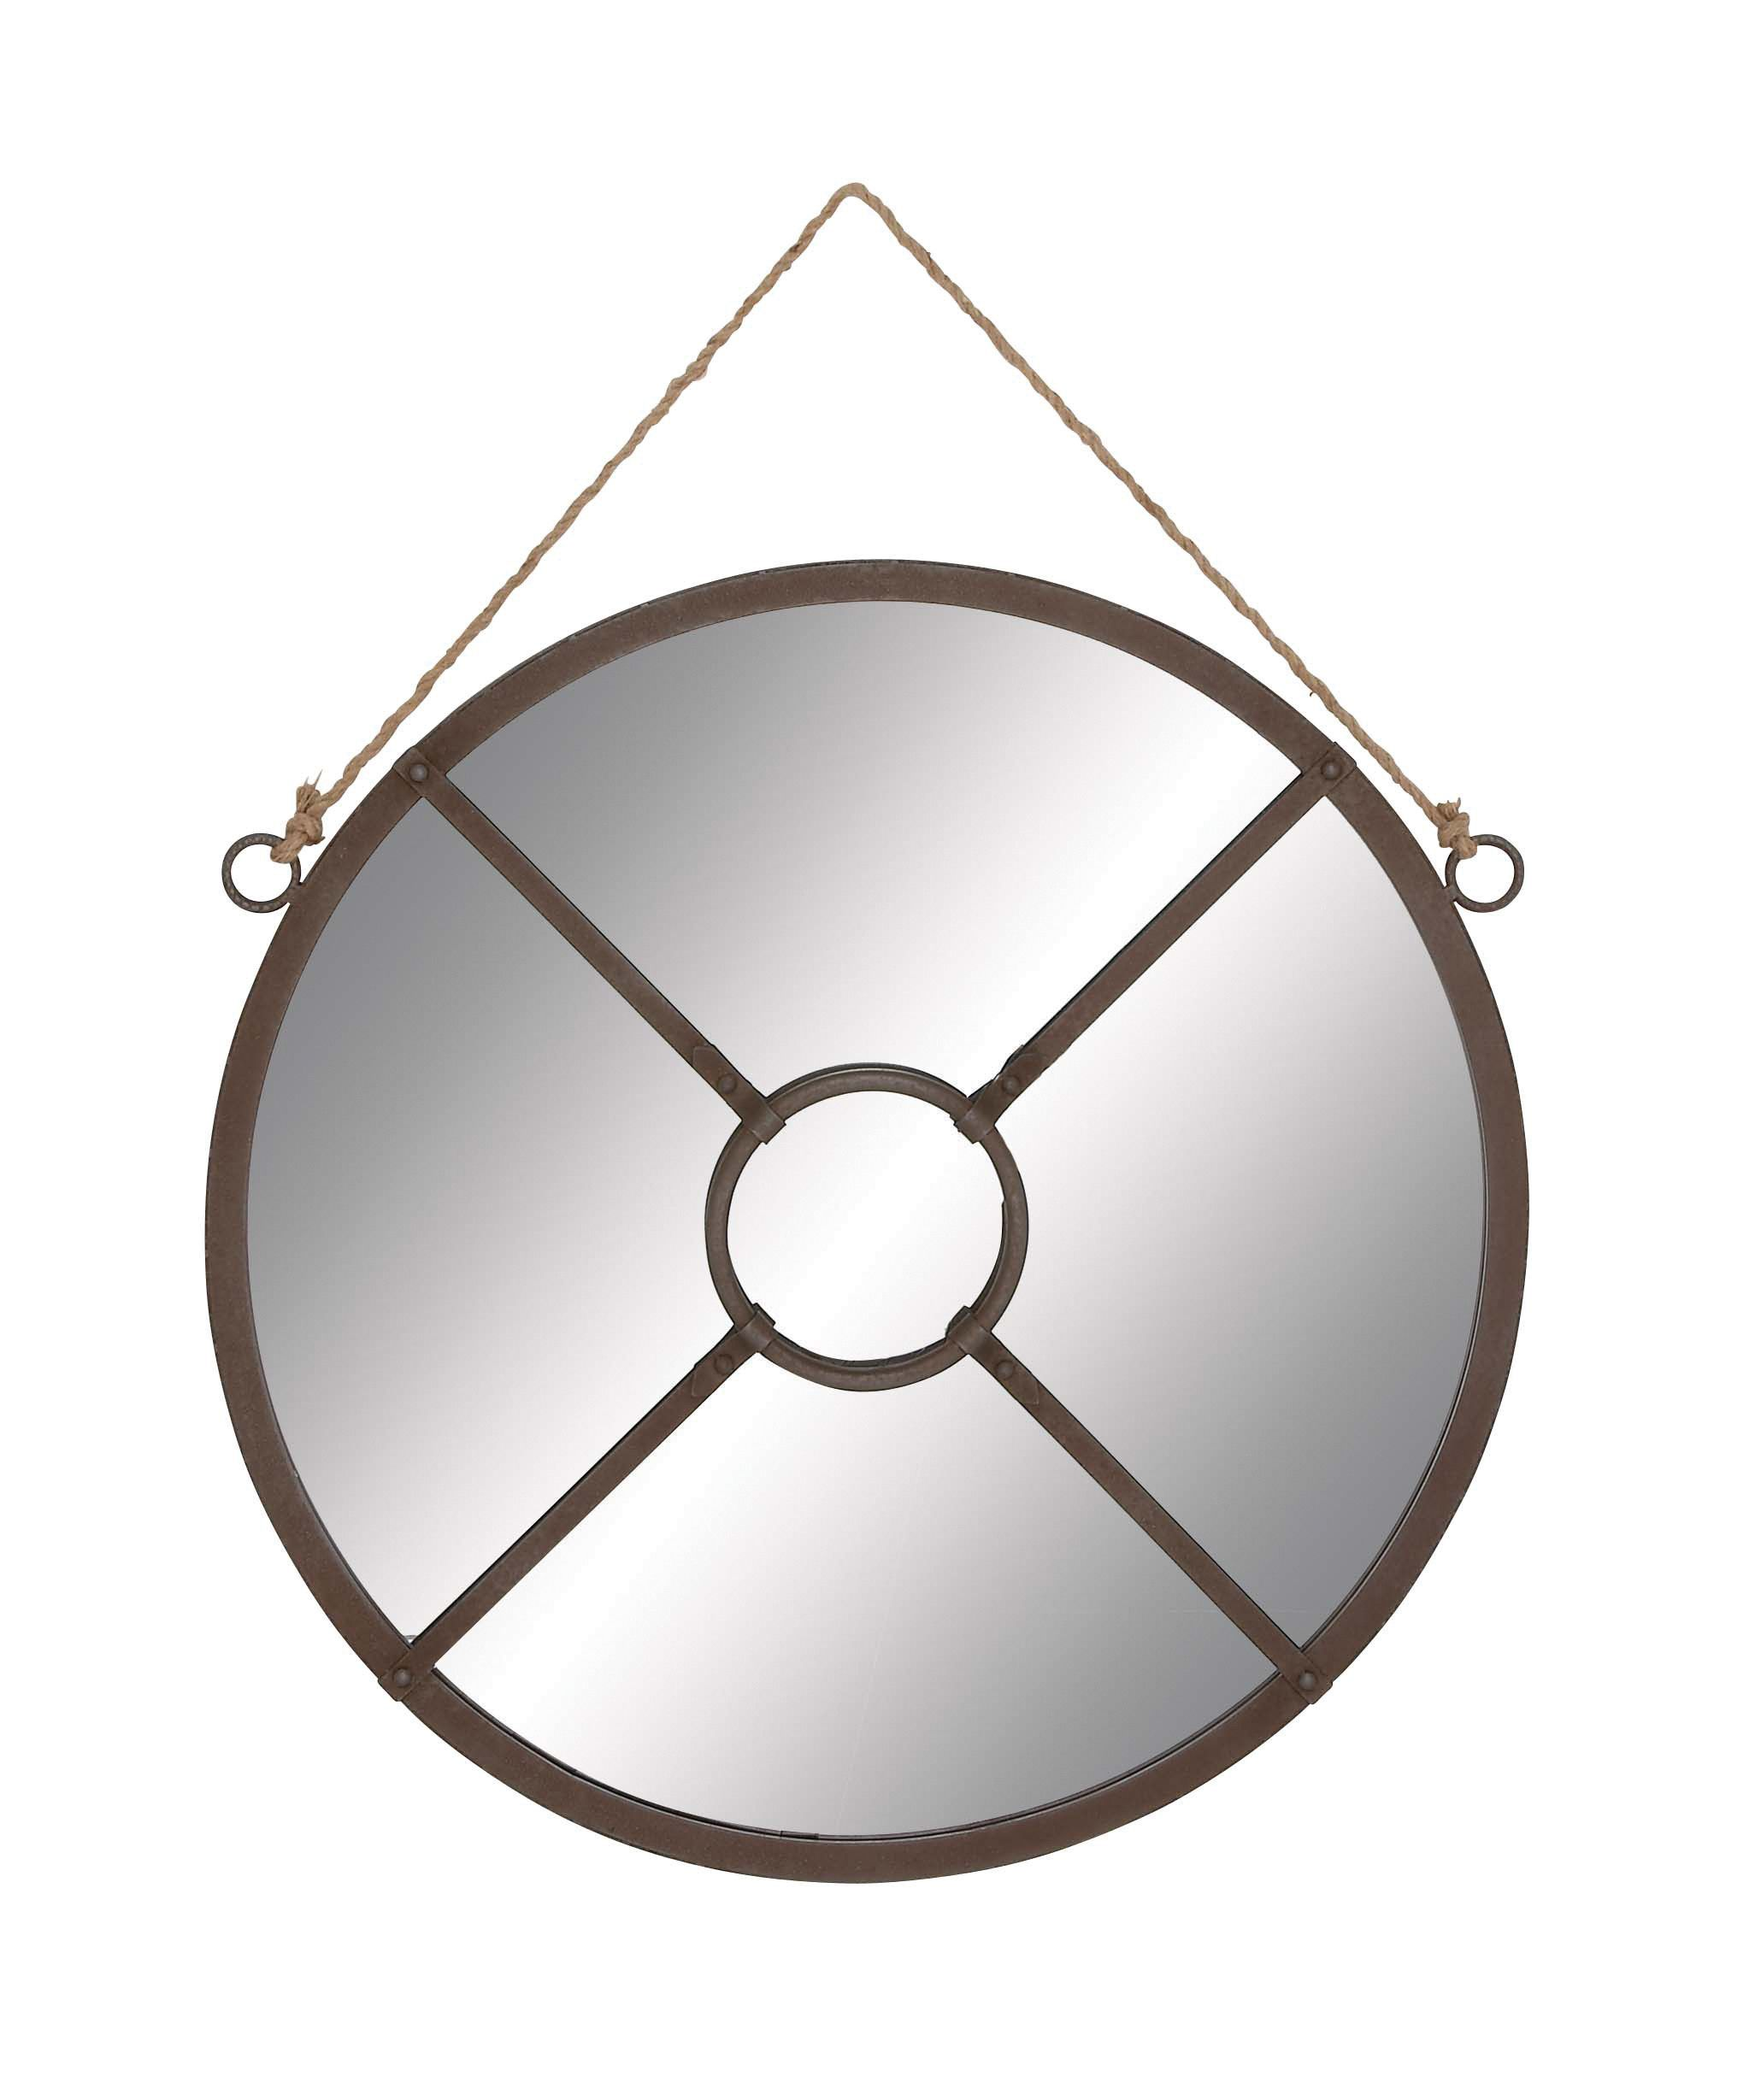 Round metal wall hanging mirror with rope attachment this elegant